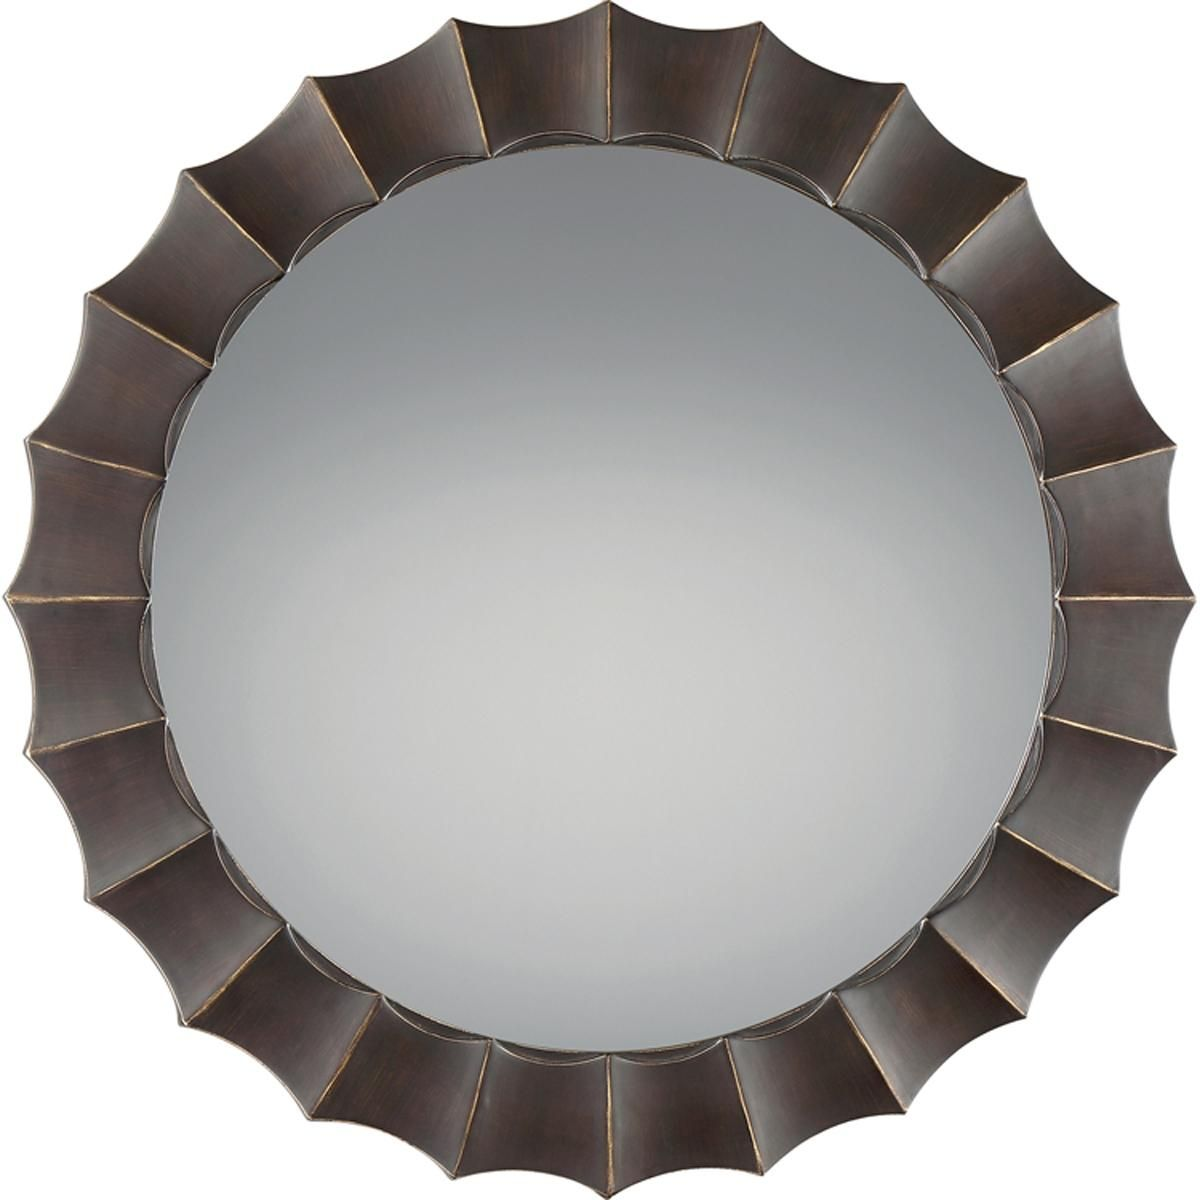 Contemporary round scalloped framed mirror transitional